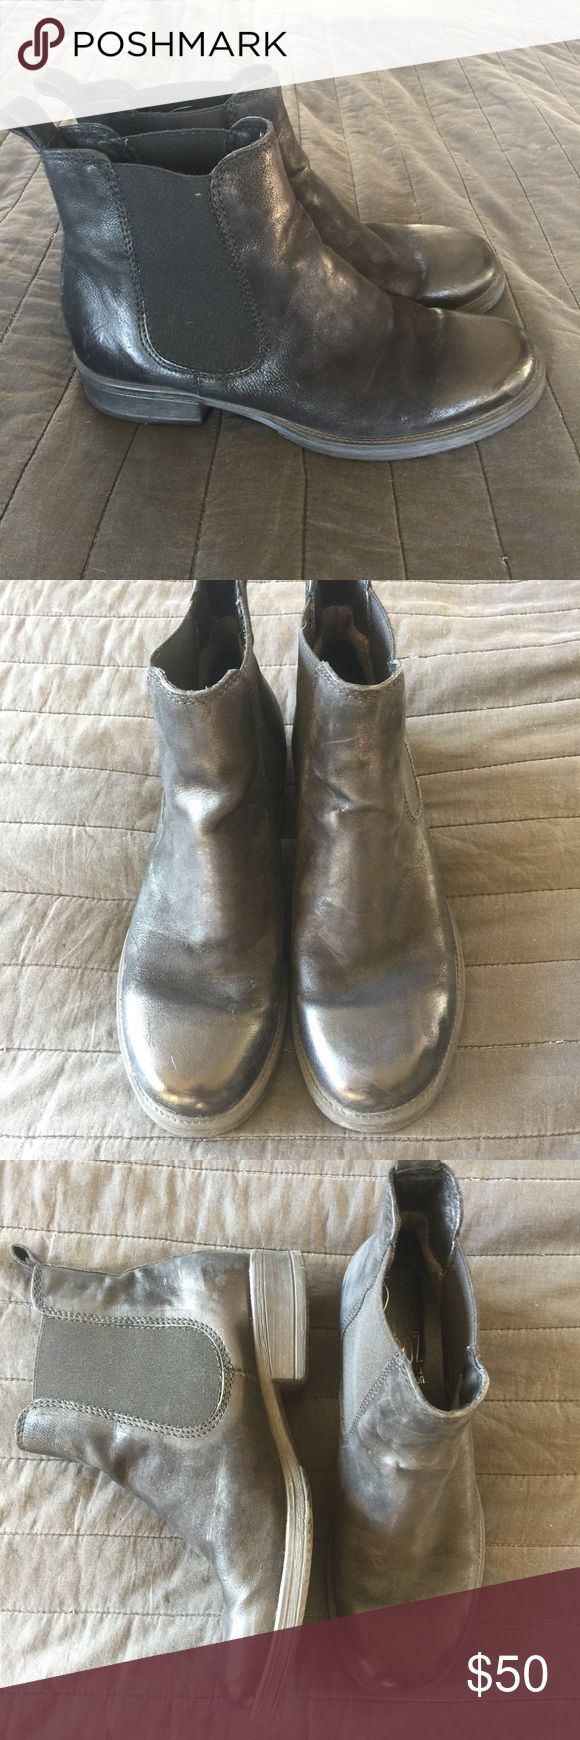 Miz Mooz black leather Chelsea boots 39 8.5 9 Great Chelsea boots by Miz Mooz! Only worn a few times, these are black leather, pull-on style in women's size 39 which is an 8.5-9. In excellent pre-owned condition with lots of life left! Miz Mooz Shoes Ankle Boots & Booties